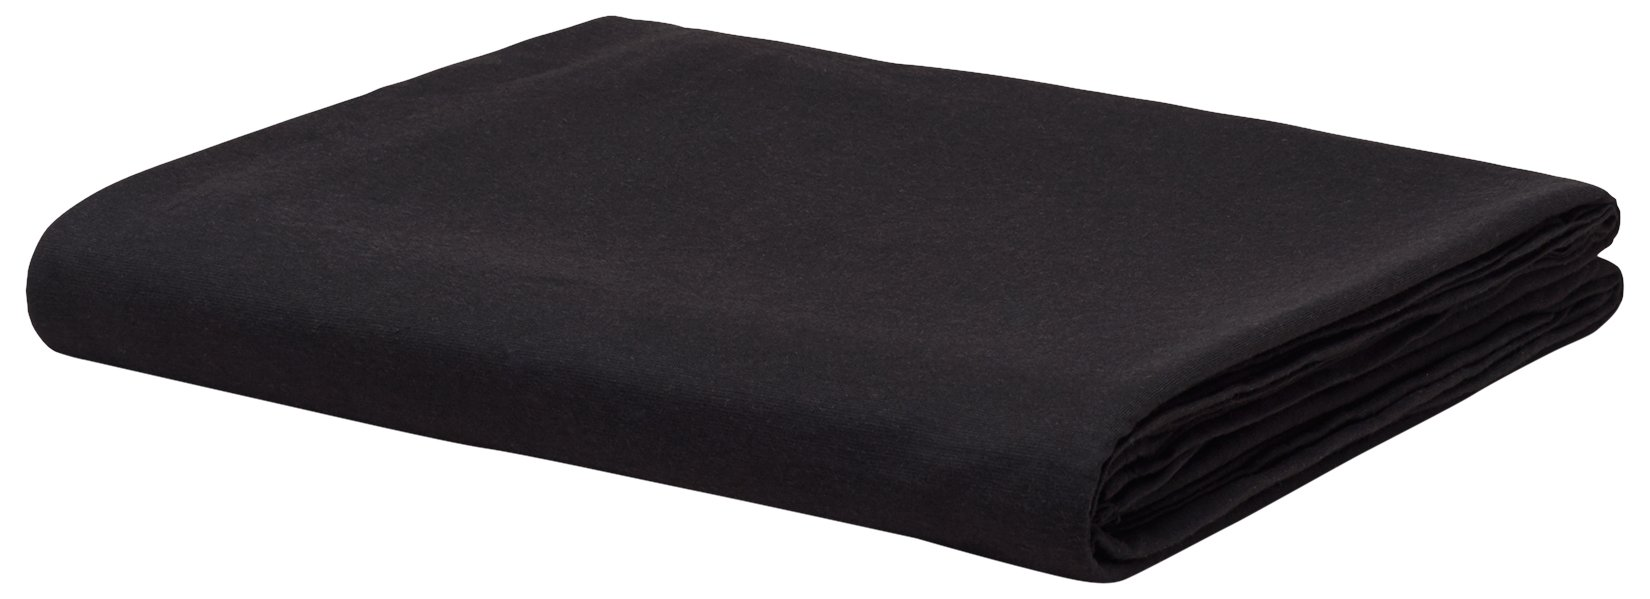 Calvin Klein Home Modern Cotton Harrison Flat Sheet, Full, Black